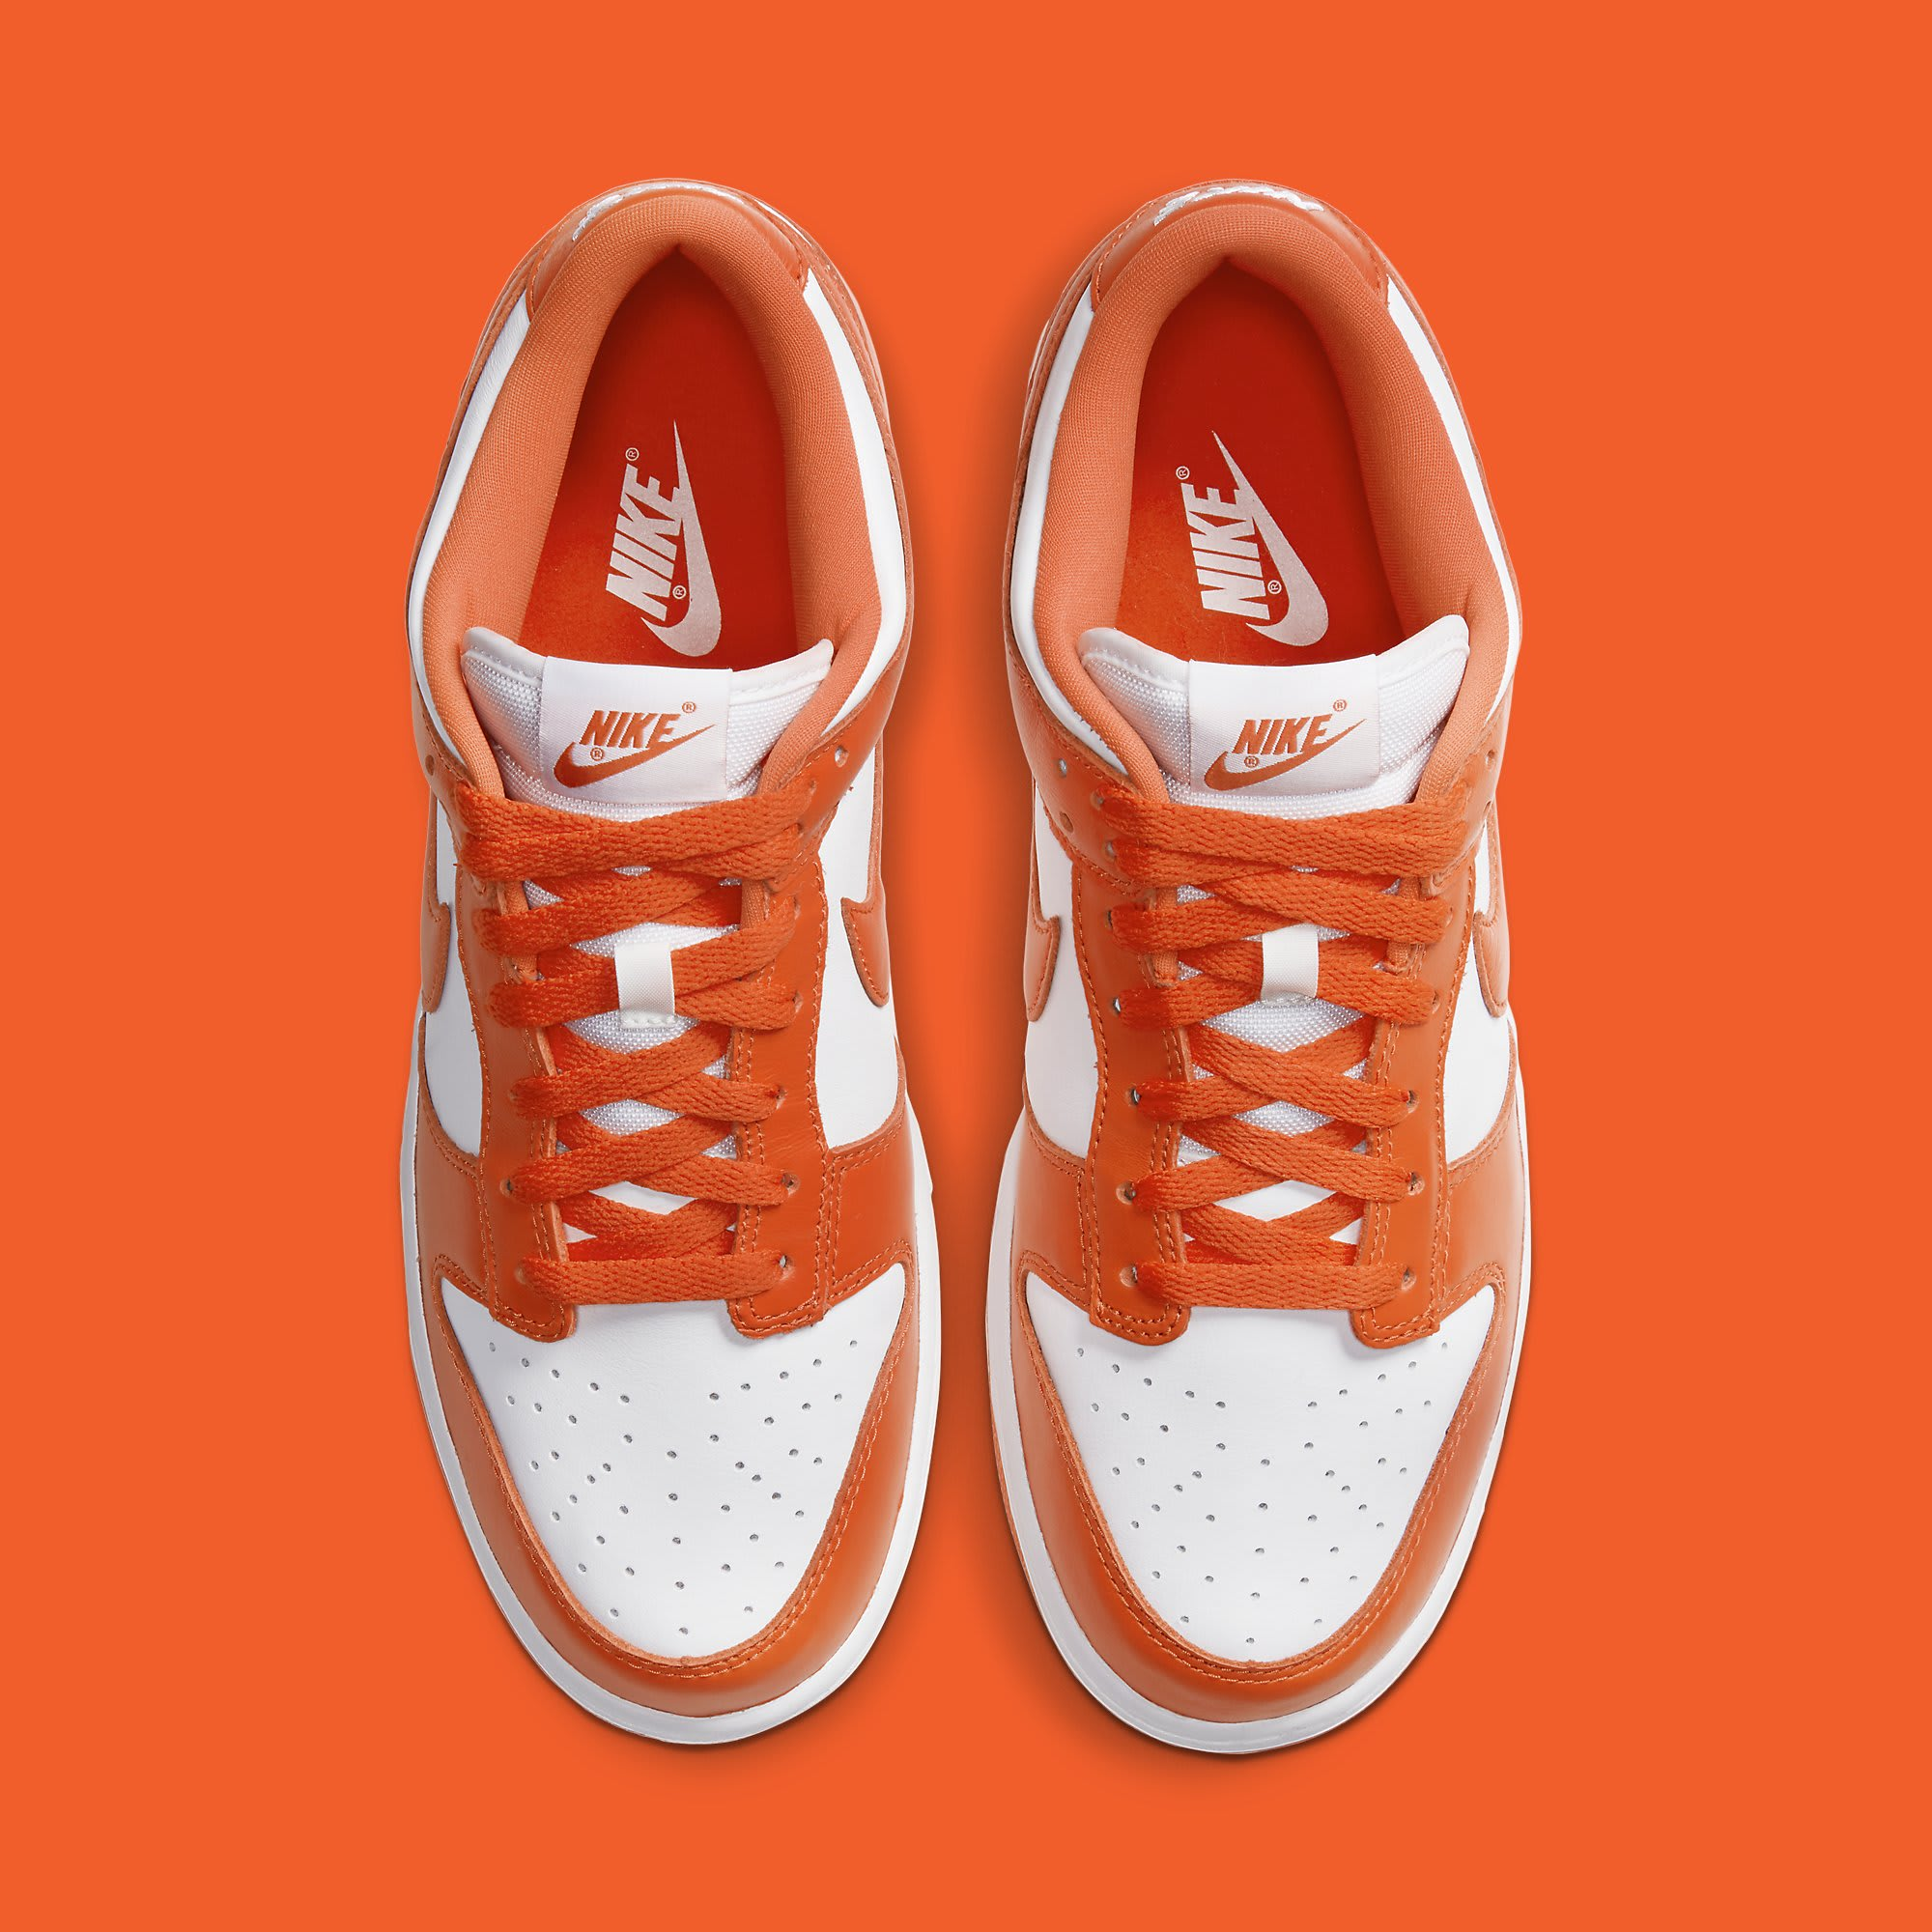 Nike Dunk Low Syracuse Release Date CU1726-101 Top